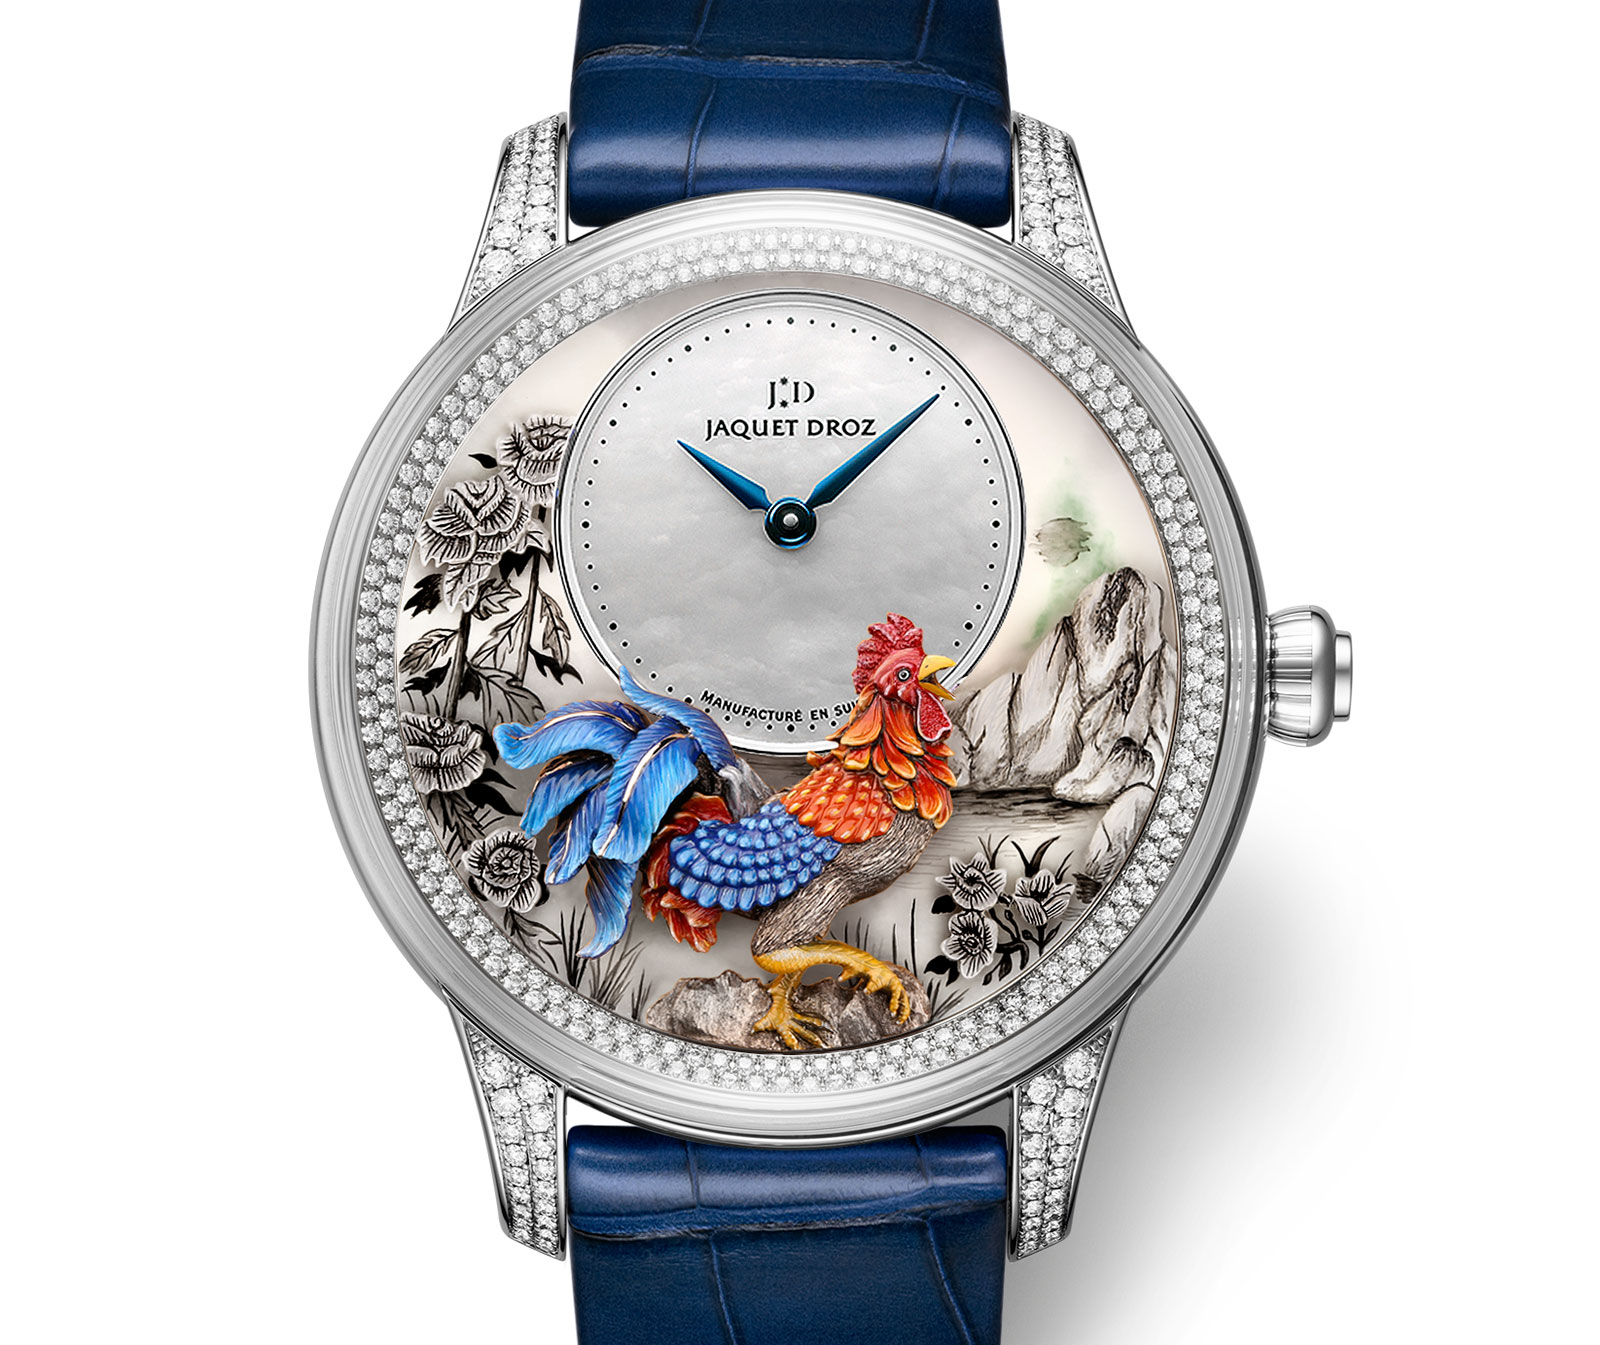 Jaquet-Droz-Petite-Heure-Minute-Rooster-7.jpg